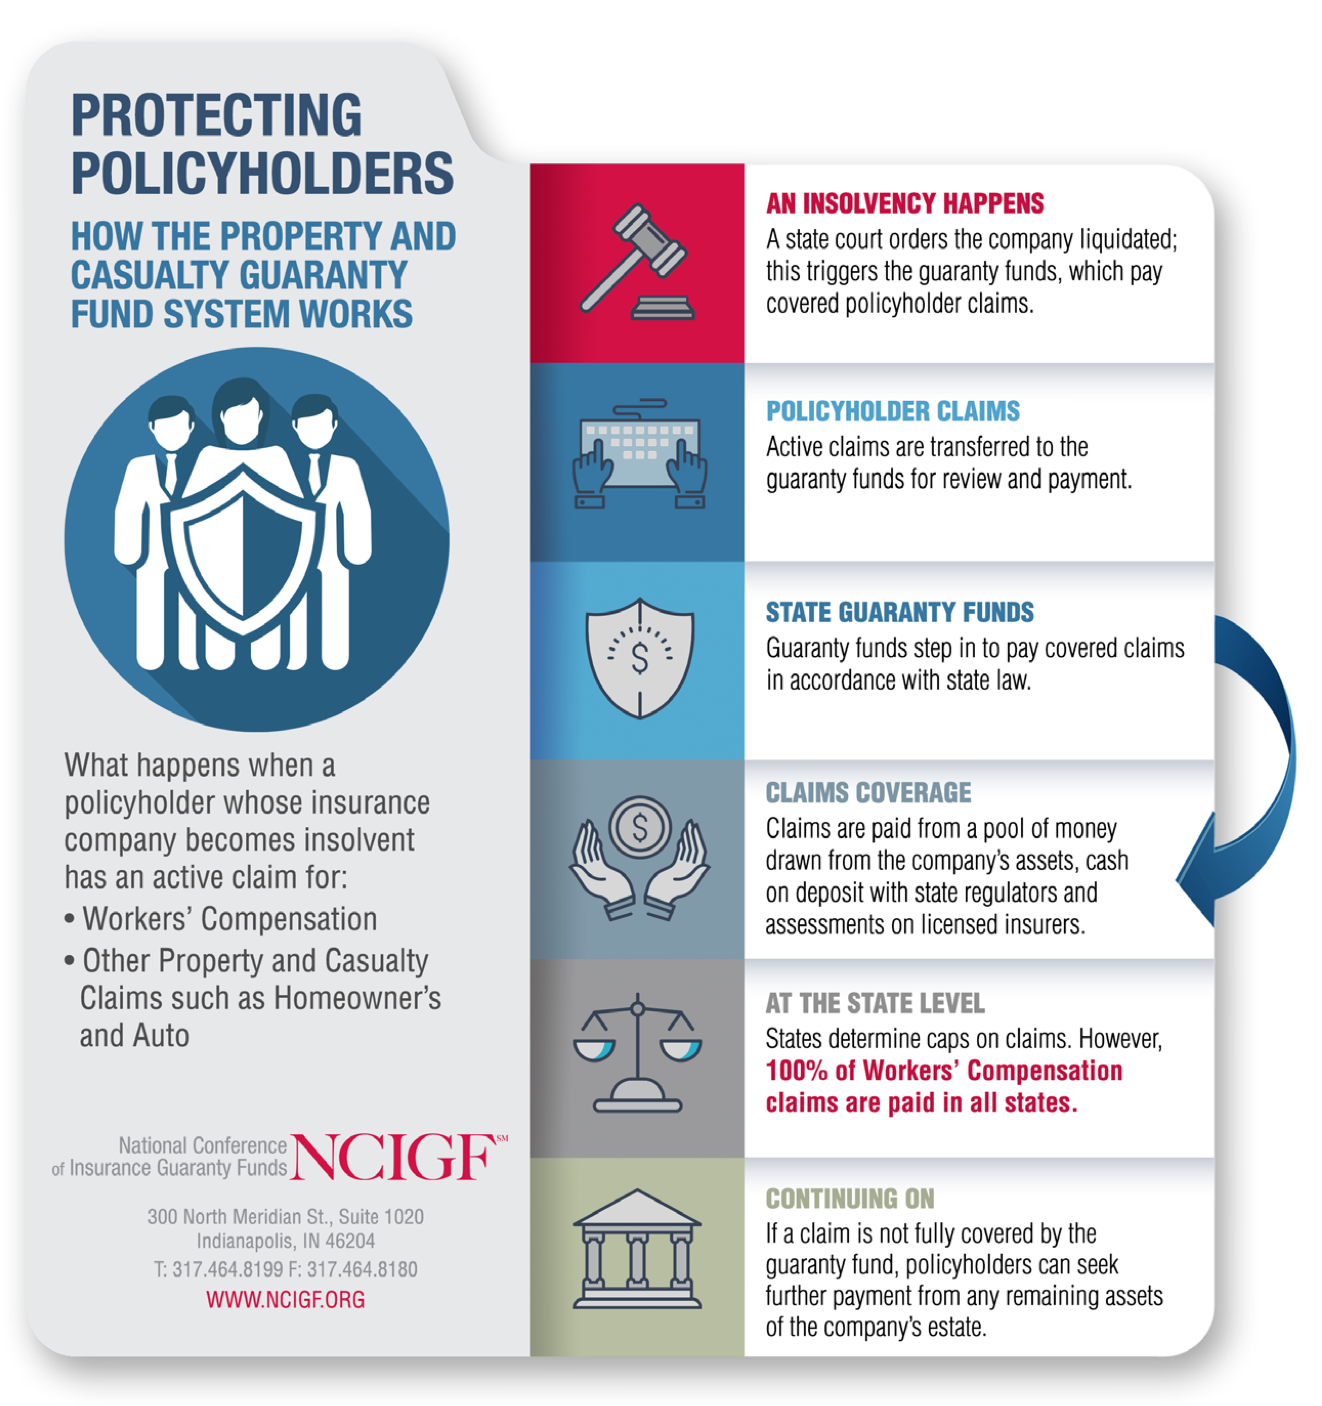 NCIGF – Supporting a system of policyholder protection